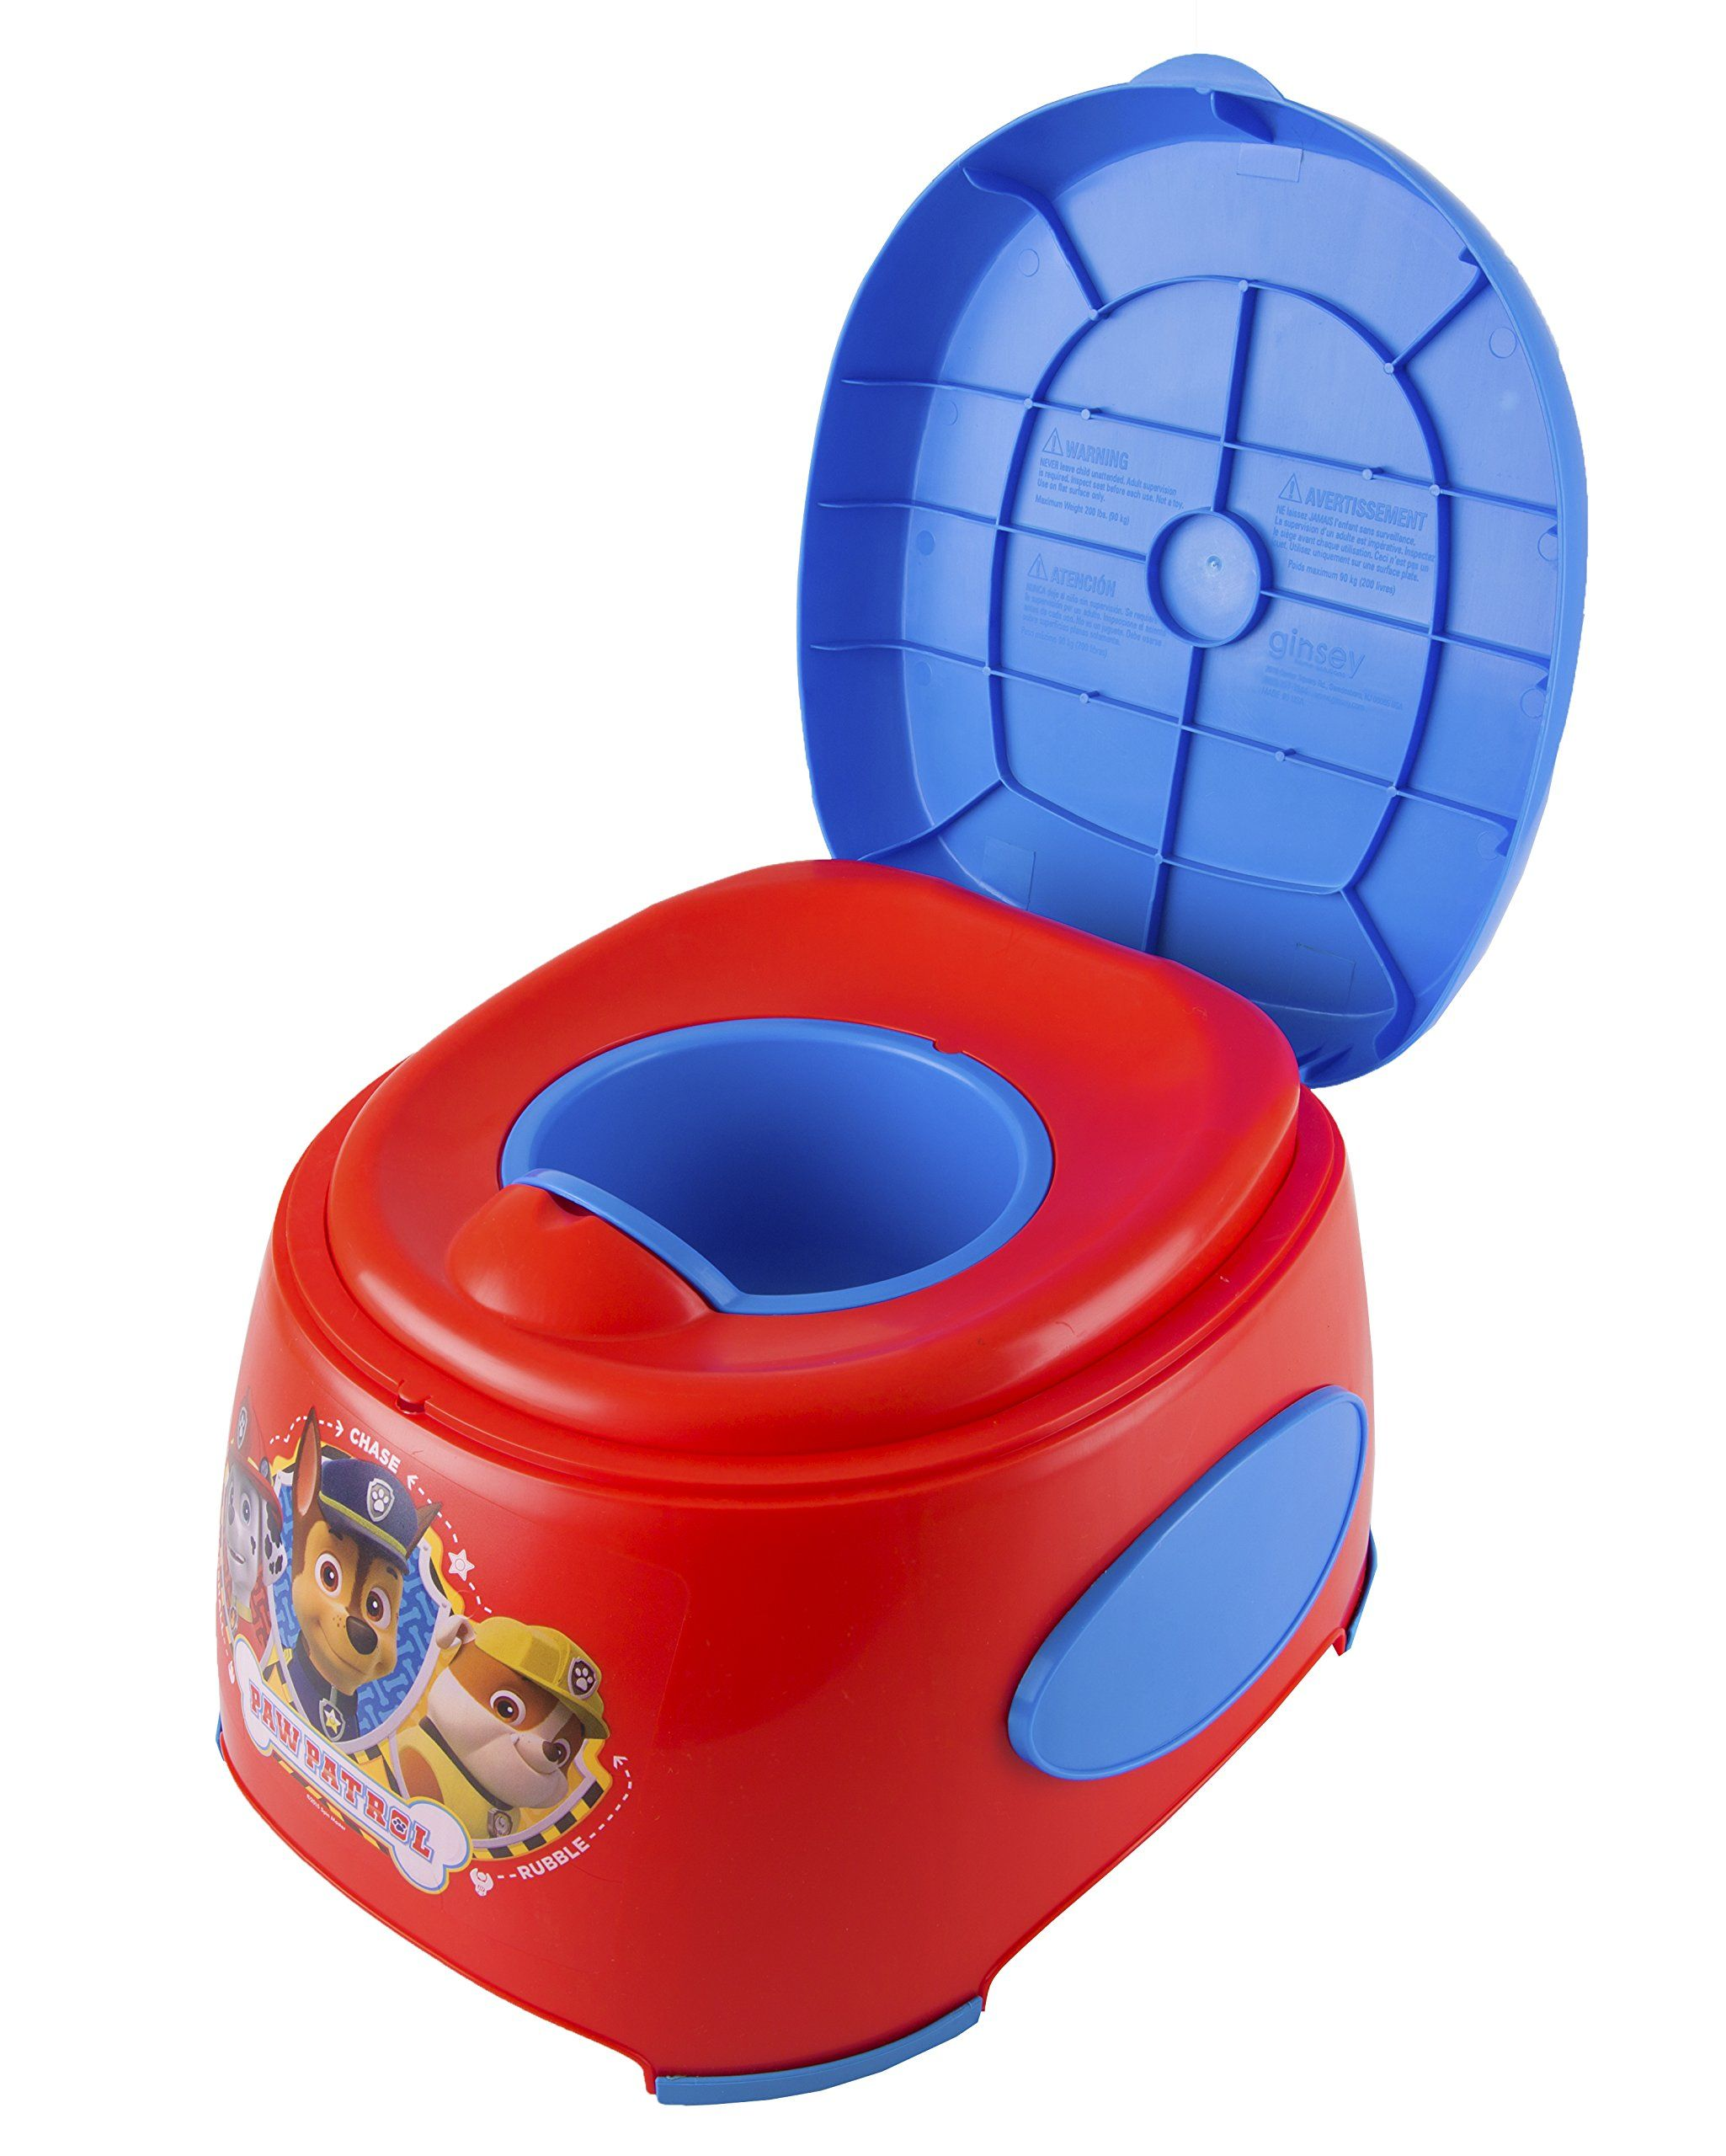 Nickelodeon Paw Patrol 3-In-1 Potty Trainer Red//Blue